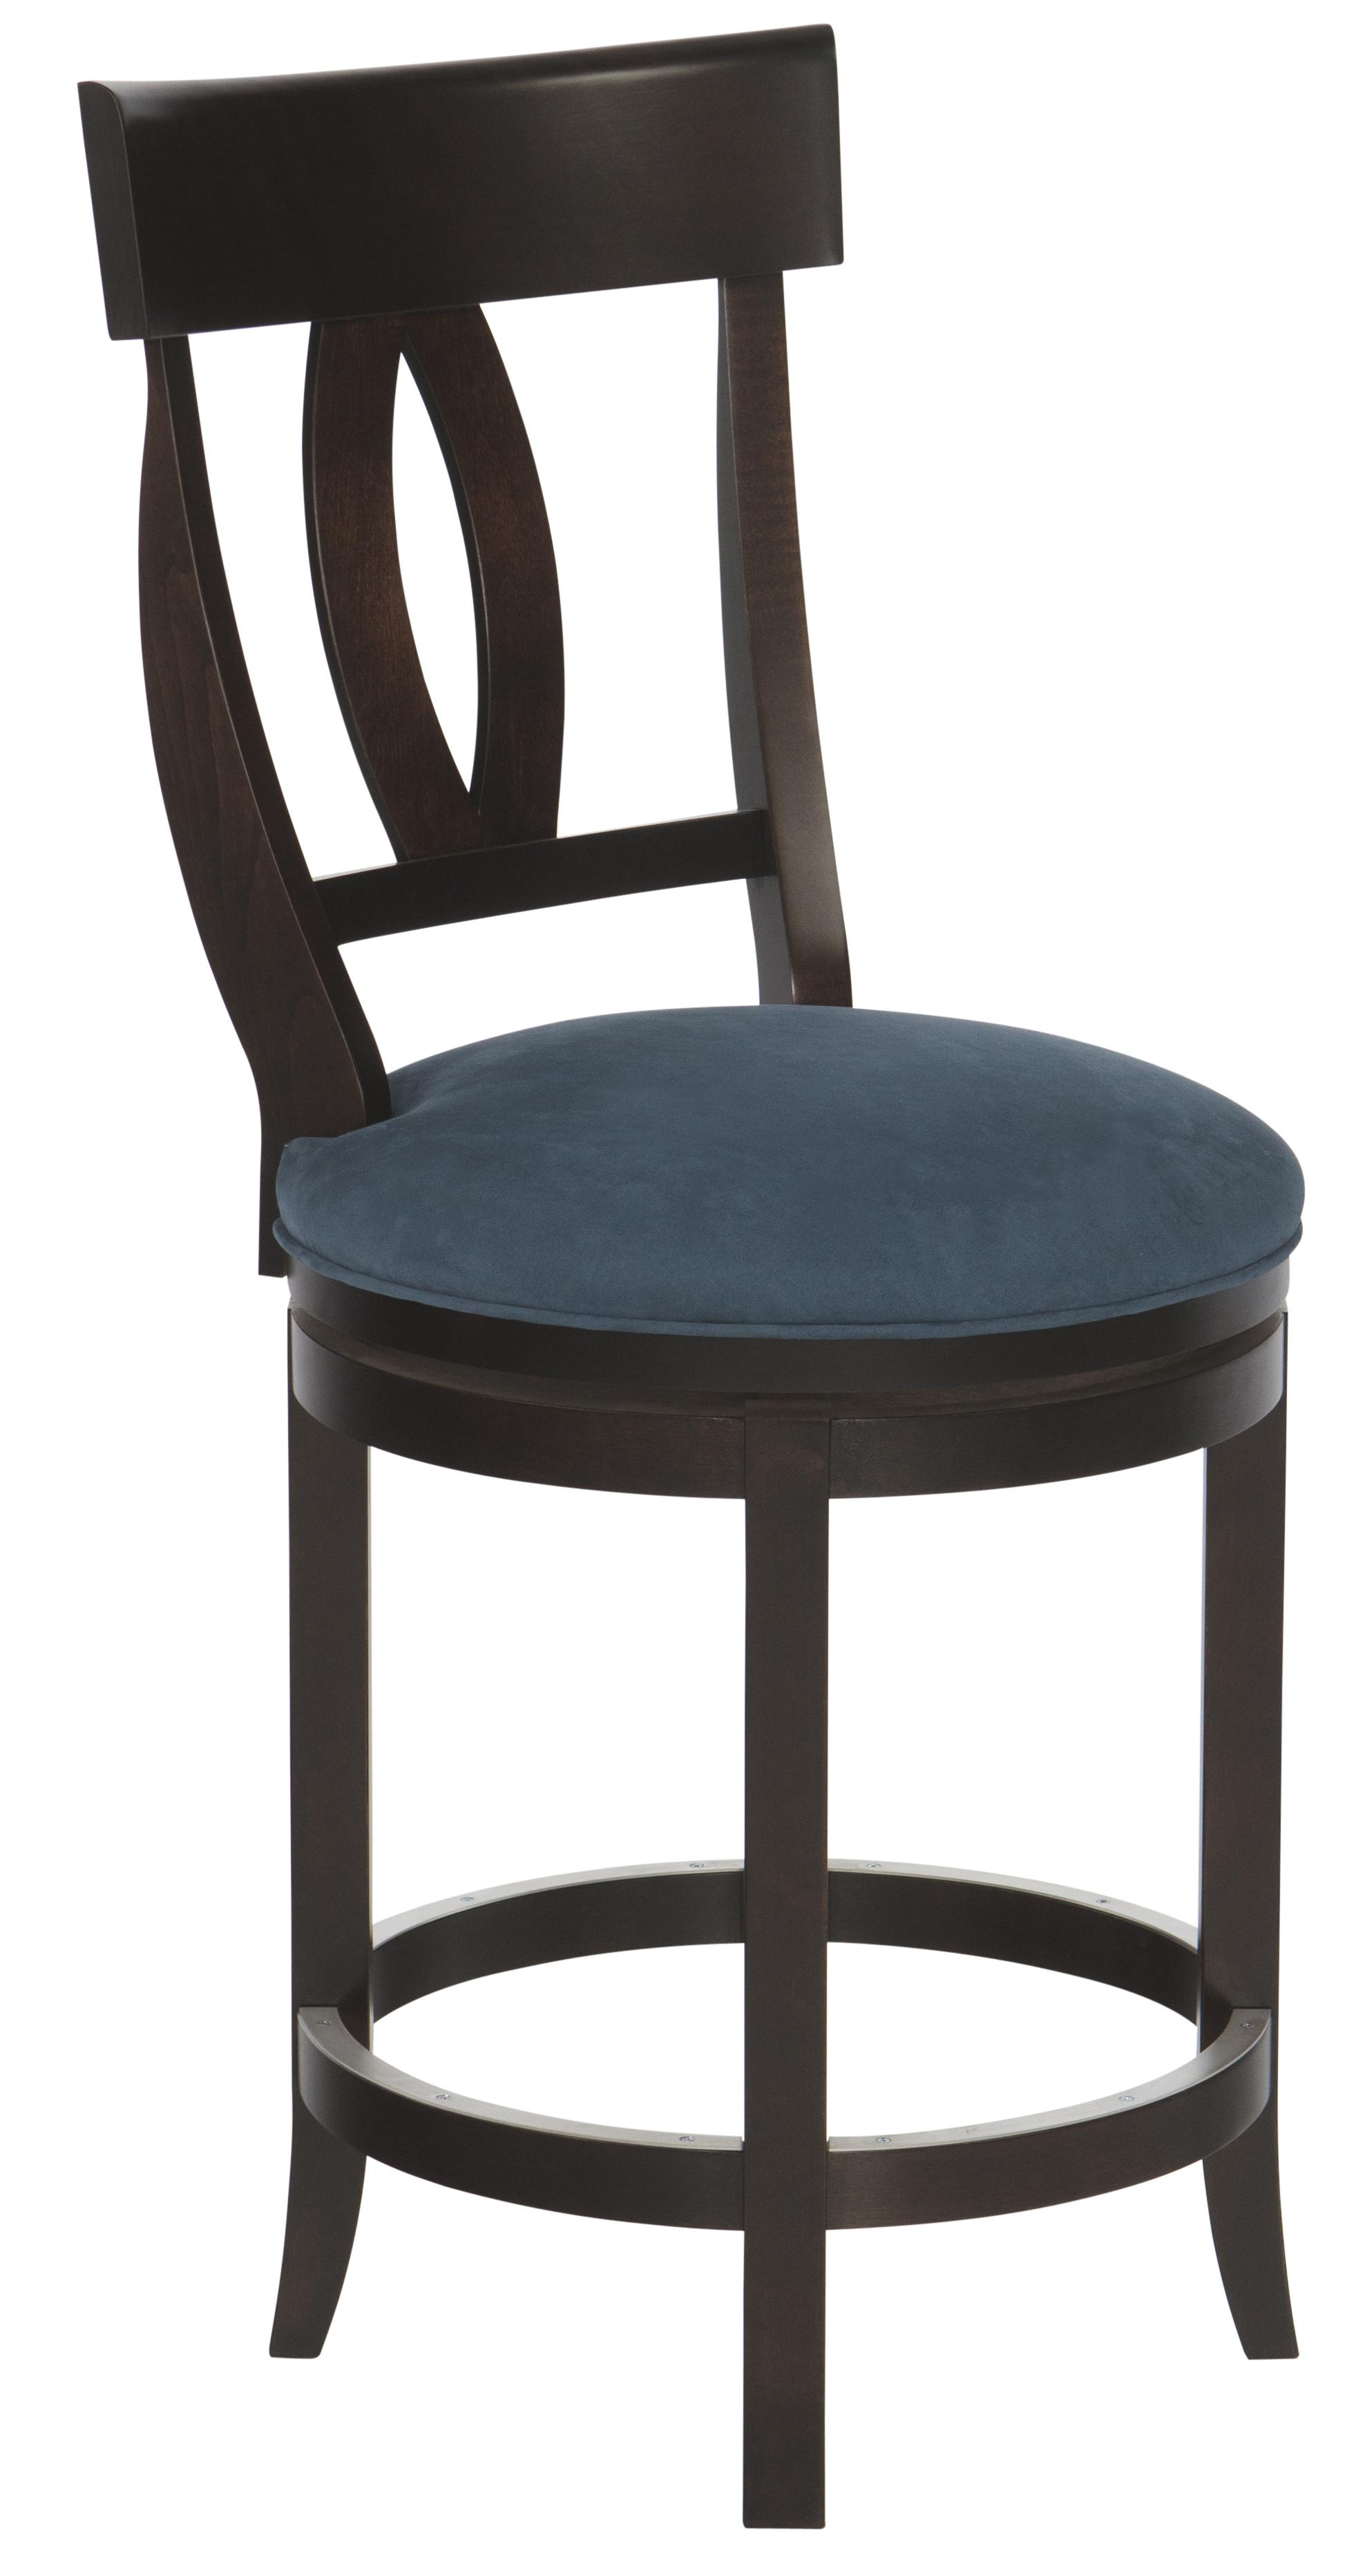 "Bar Stools Customizable 24"" Upholstered Swivel Stool by Canadel at Saugerties Furniture Mart"